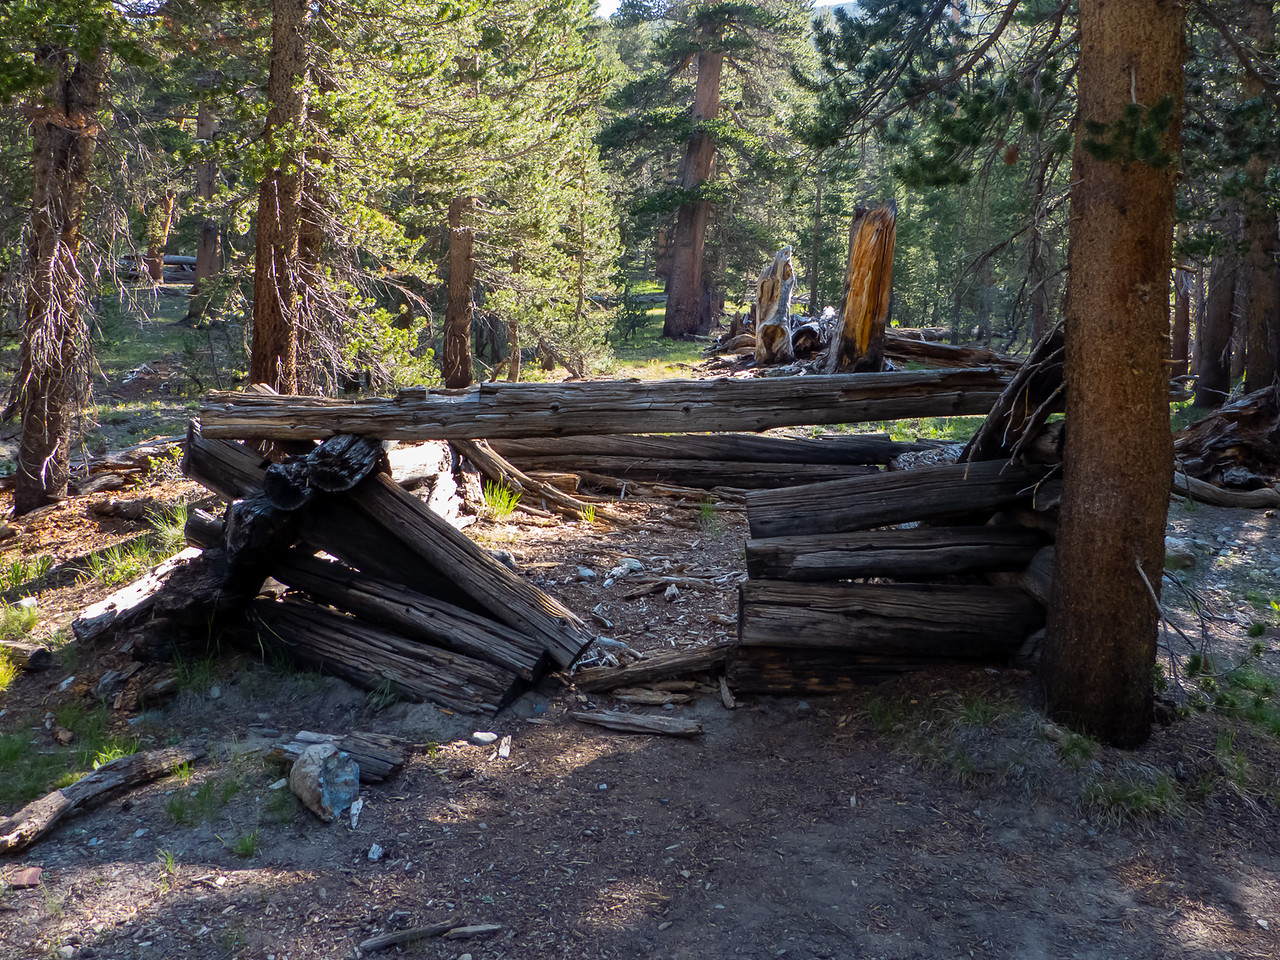 There were two of these collapsed log cabins along the trail.